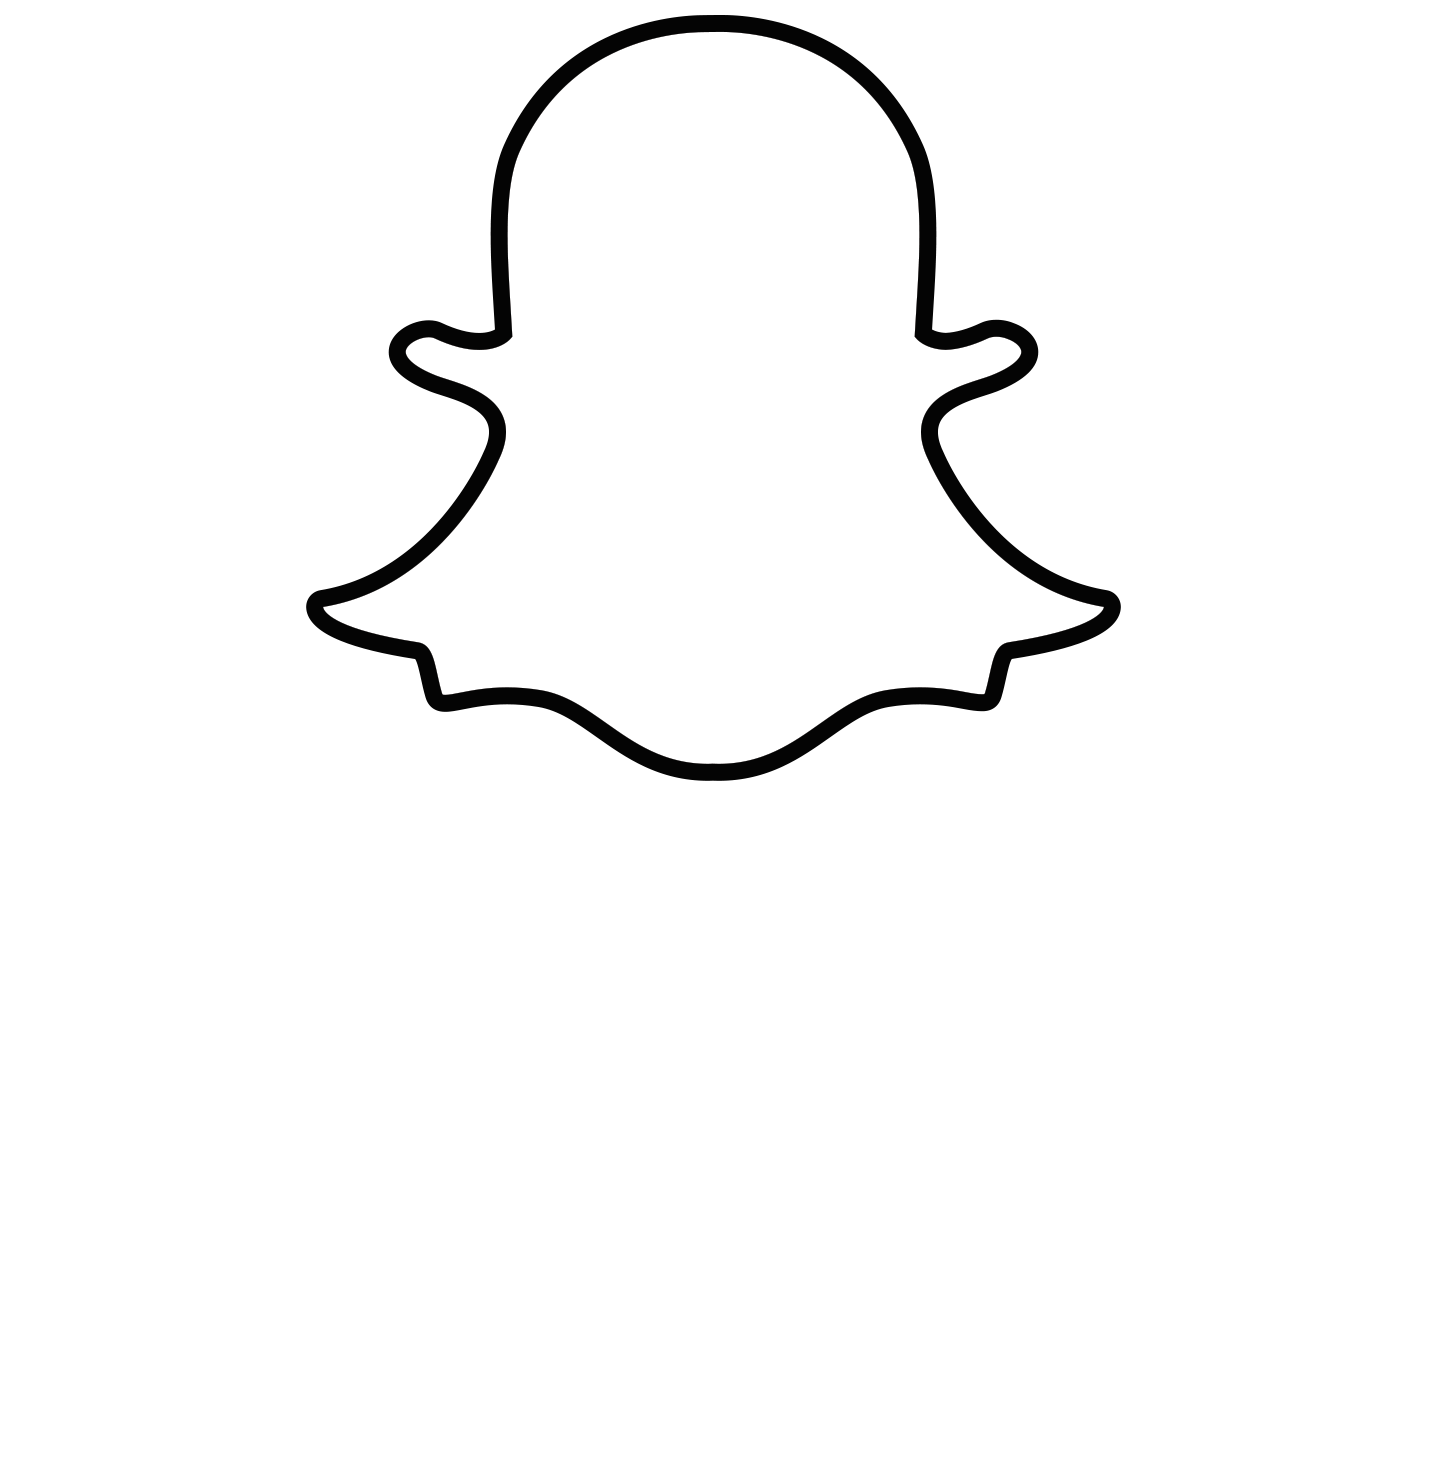 Black And White Snapchat Logo Pictures to Pin on Pinterest ...